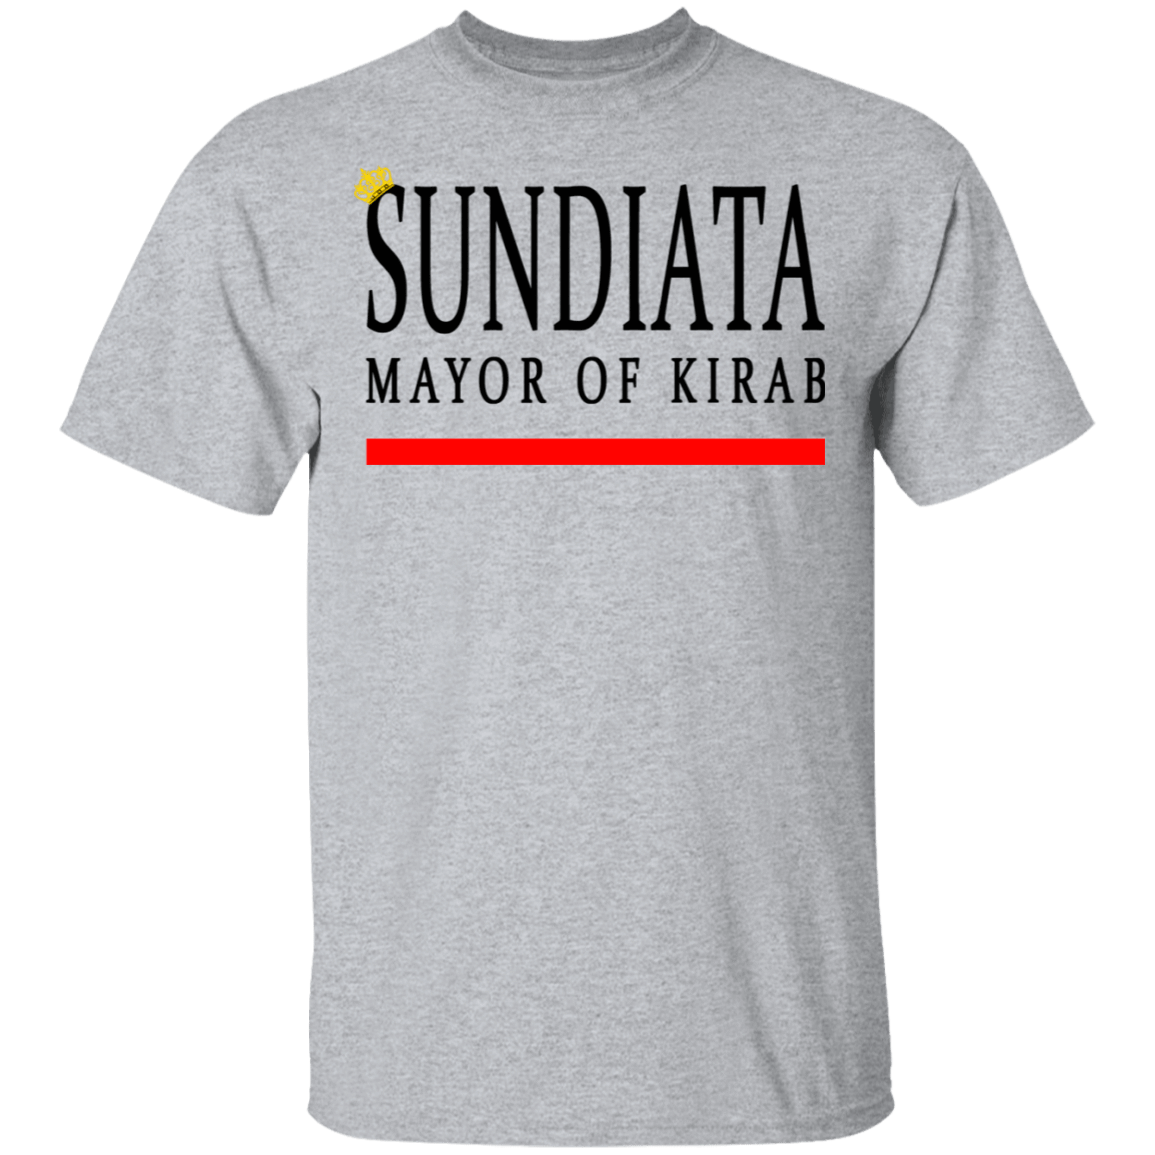 Sundiata Mayor Of Kirab T-Shirts, Hoodies, Tank 22-115-79999094-254 - Tee Ript